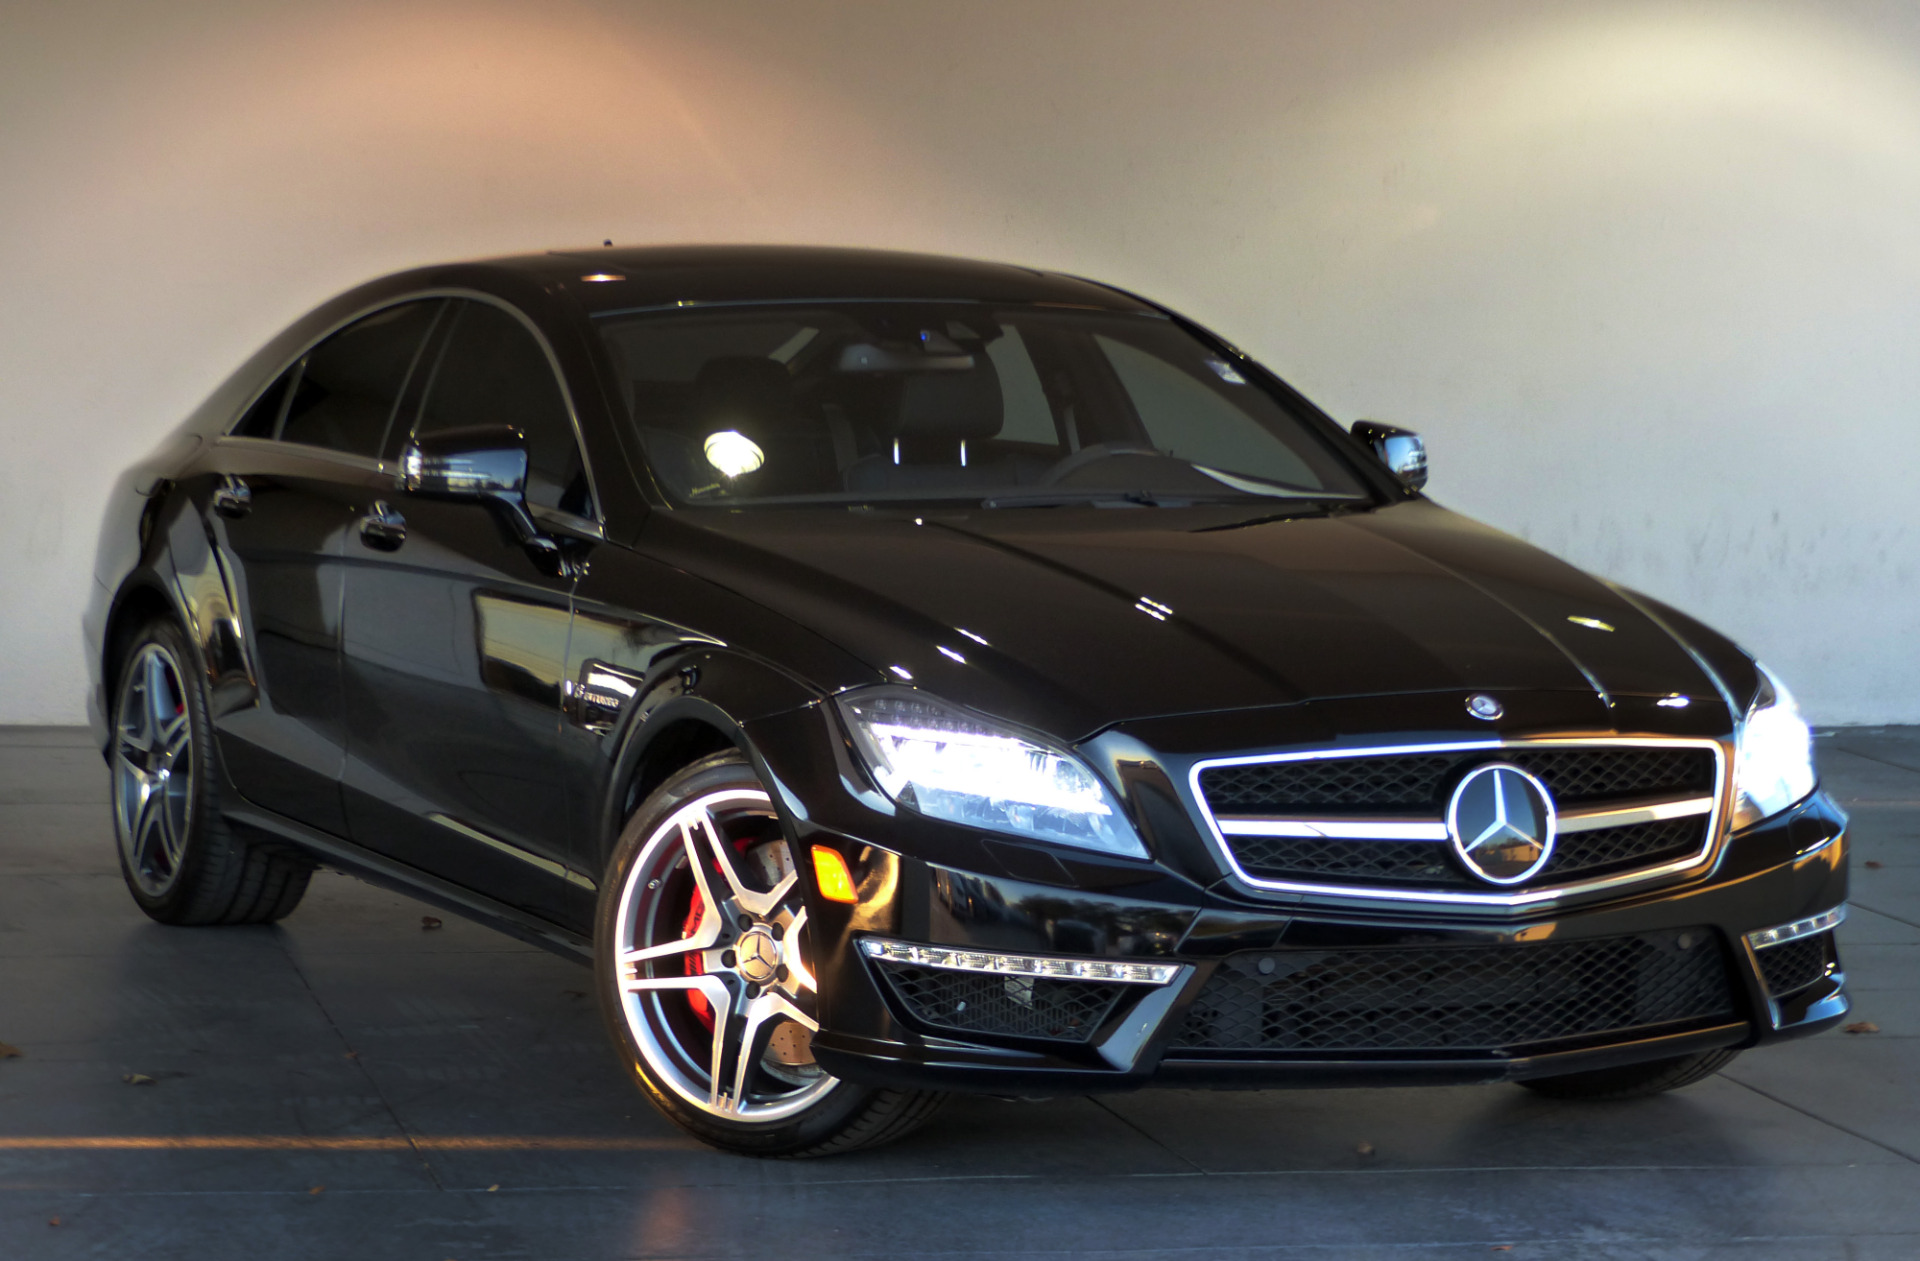 used 2014 mercedes benz cls cls 63 amg marietta ga. Black Bedroom Furniture Sets. Home Design Ideas